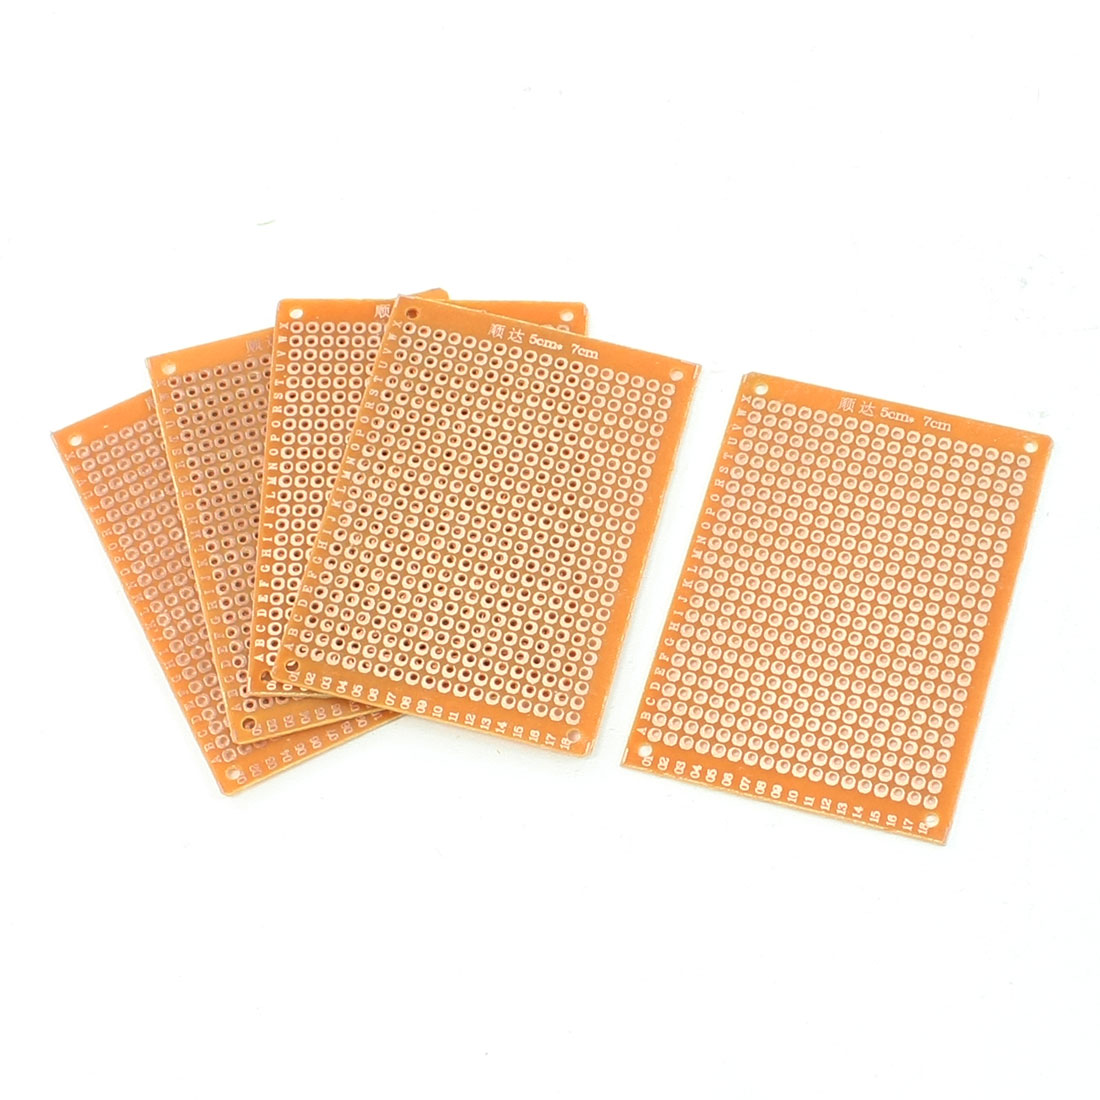 5 Pcs Prototyping Universal Copper PCB Print Circuit Board 50mm x 70mm